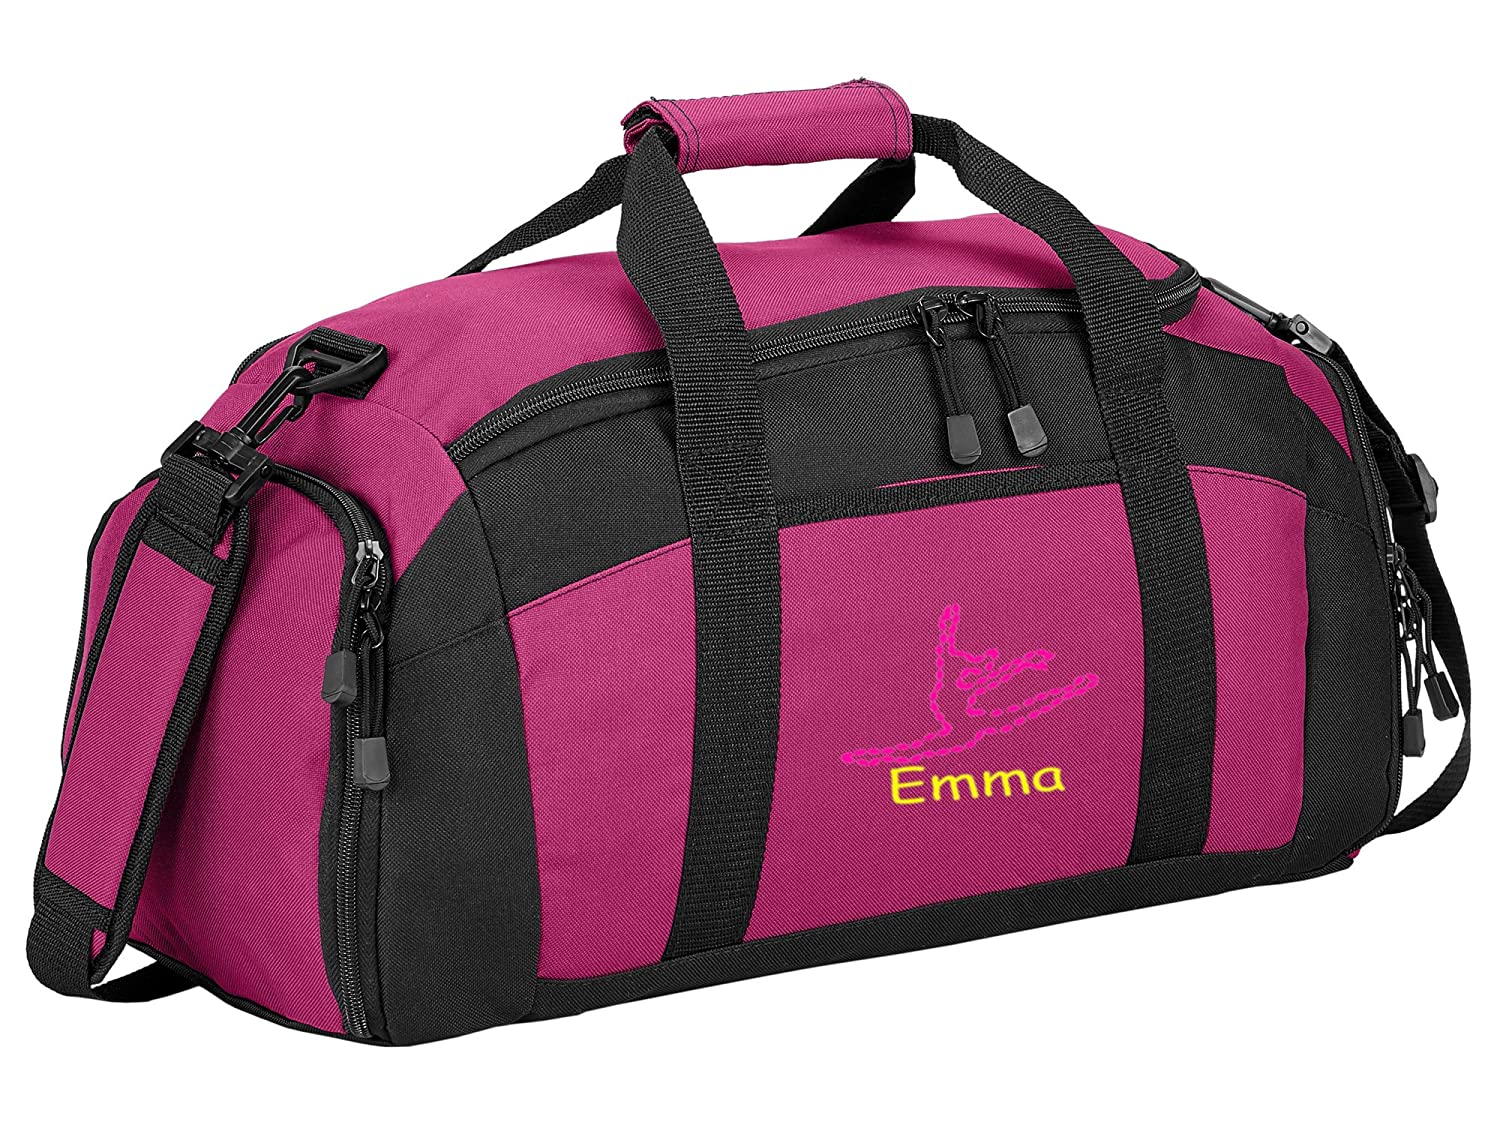 all about me company Personalized Dance Gym Sports Duffel Bag Navy